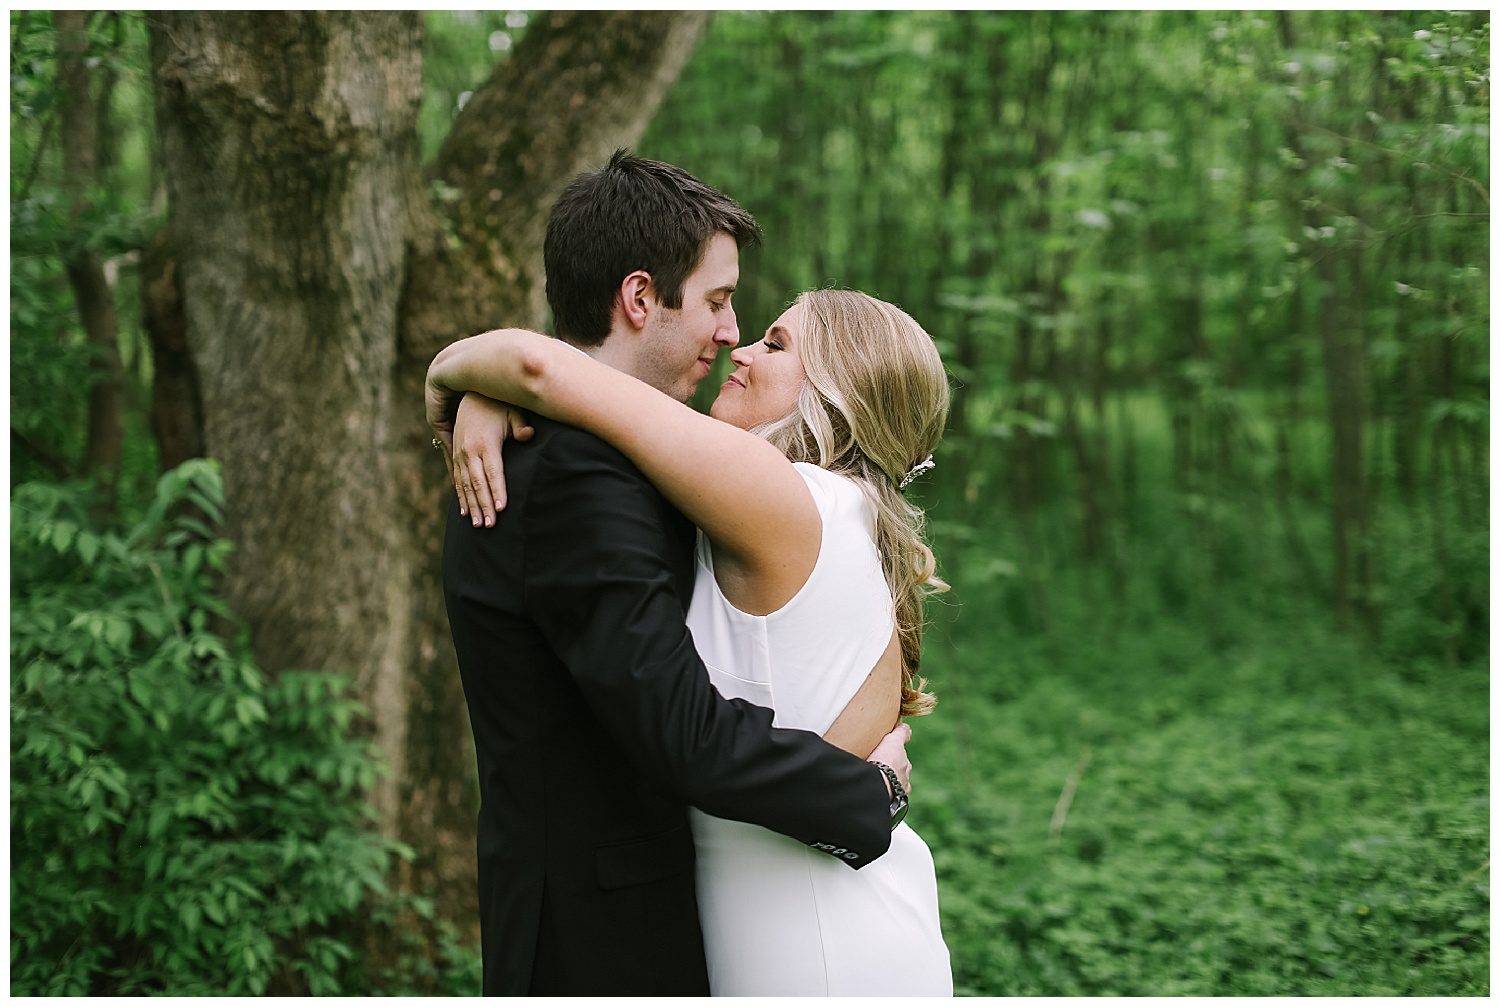 trent.and.kendra.photography.elopement.intimate.wedding-49.jpg